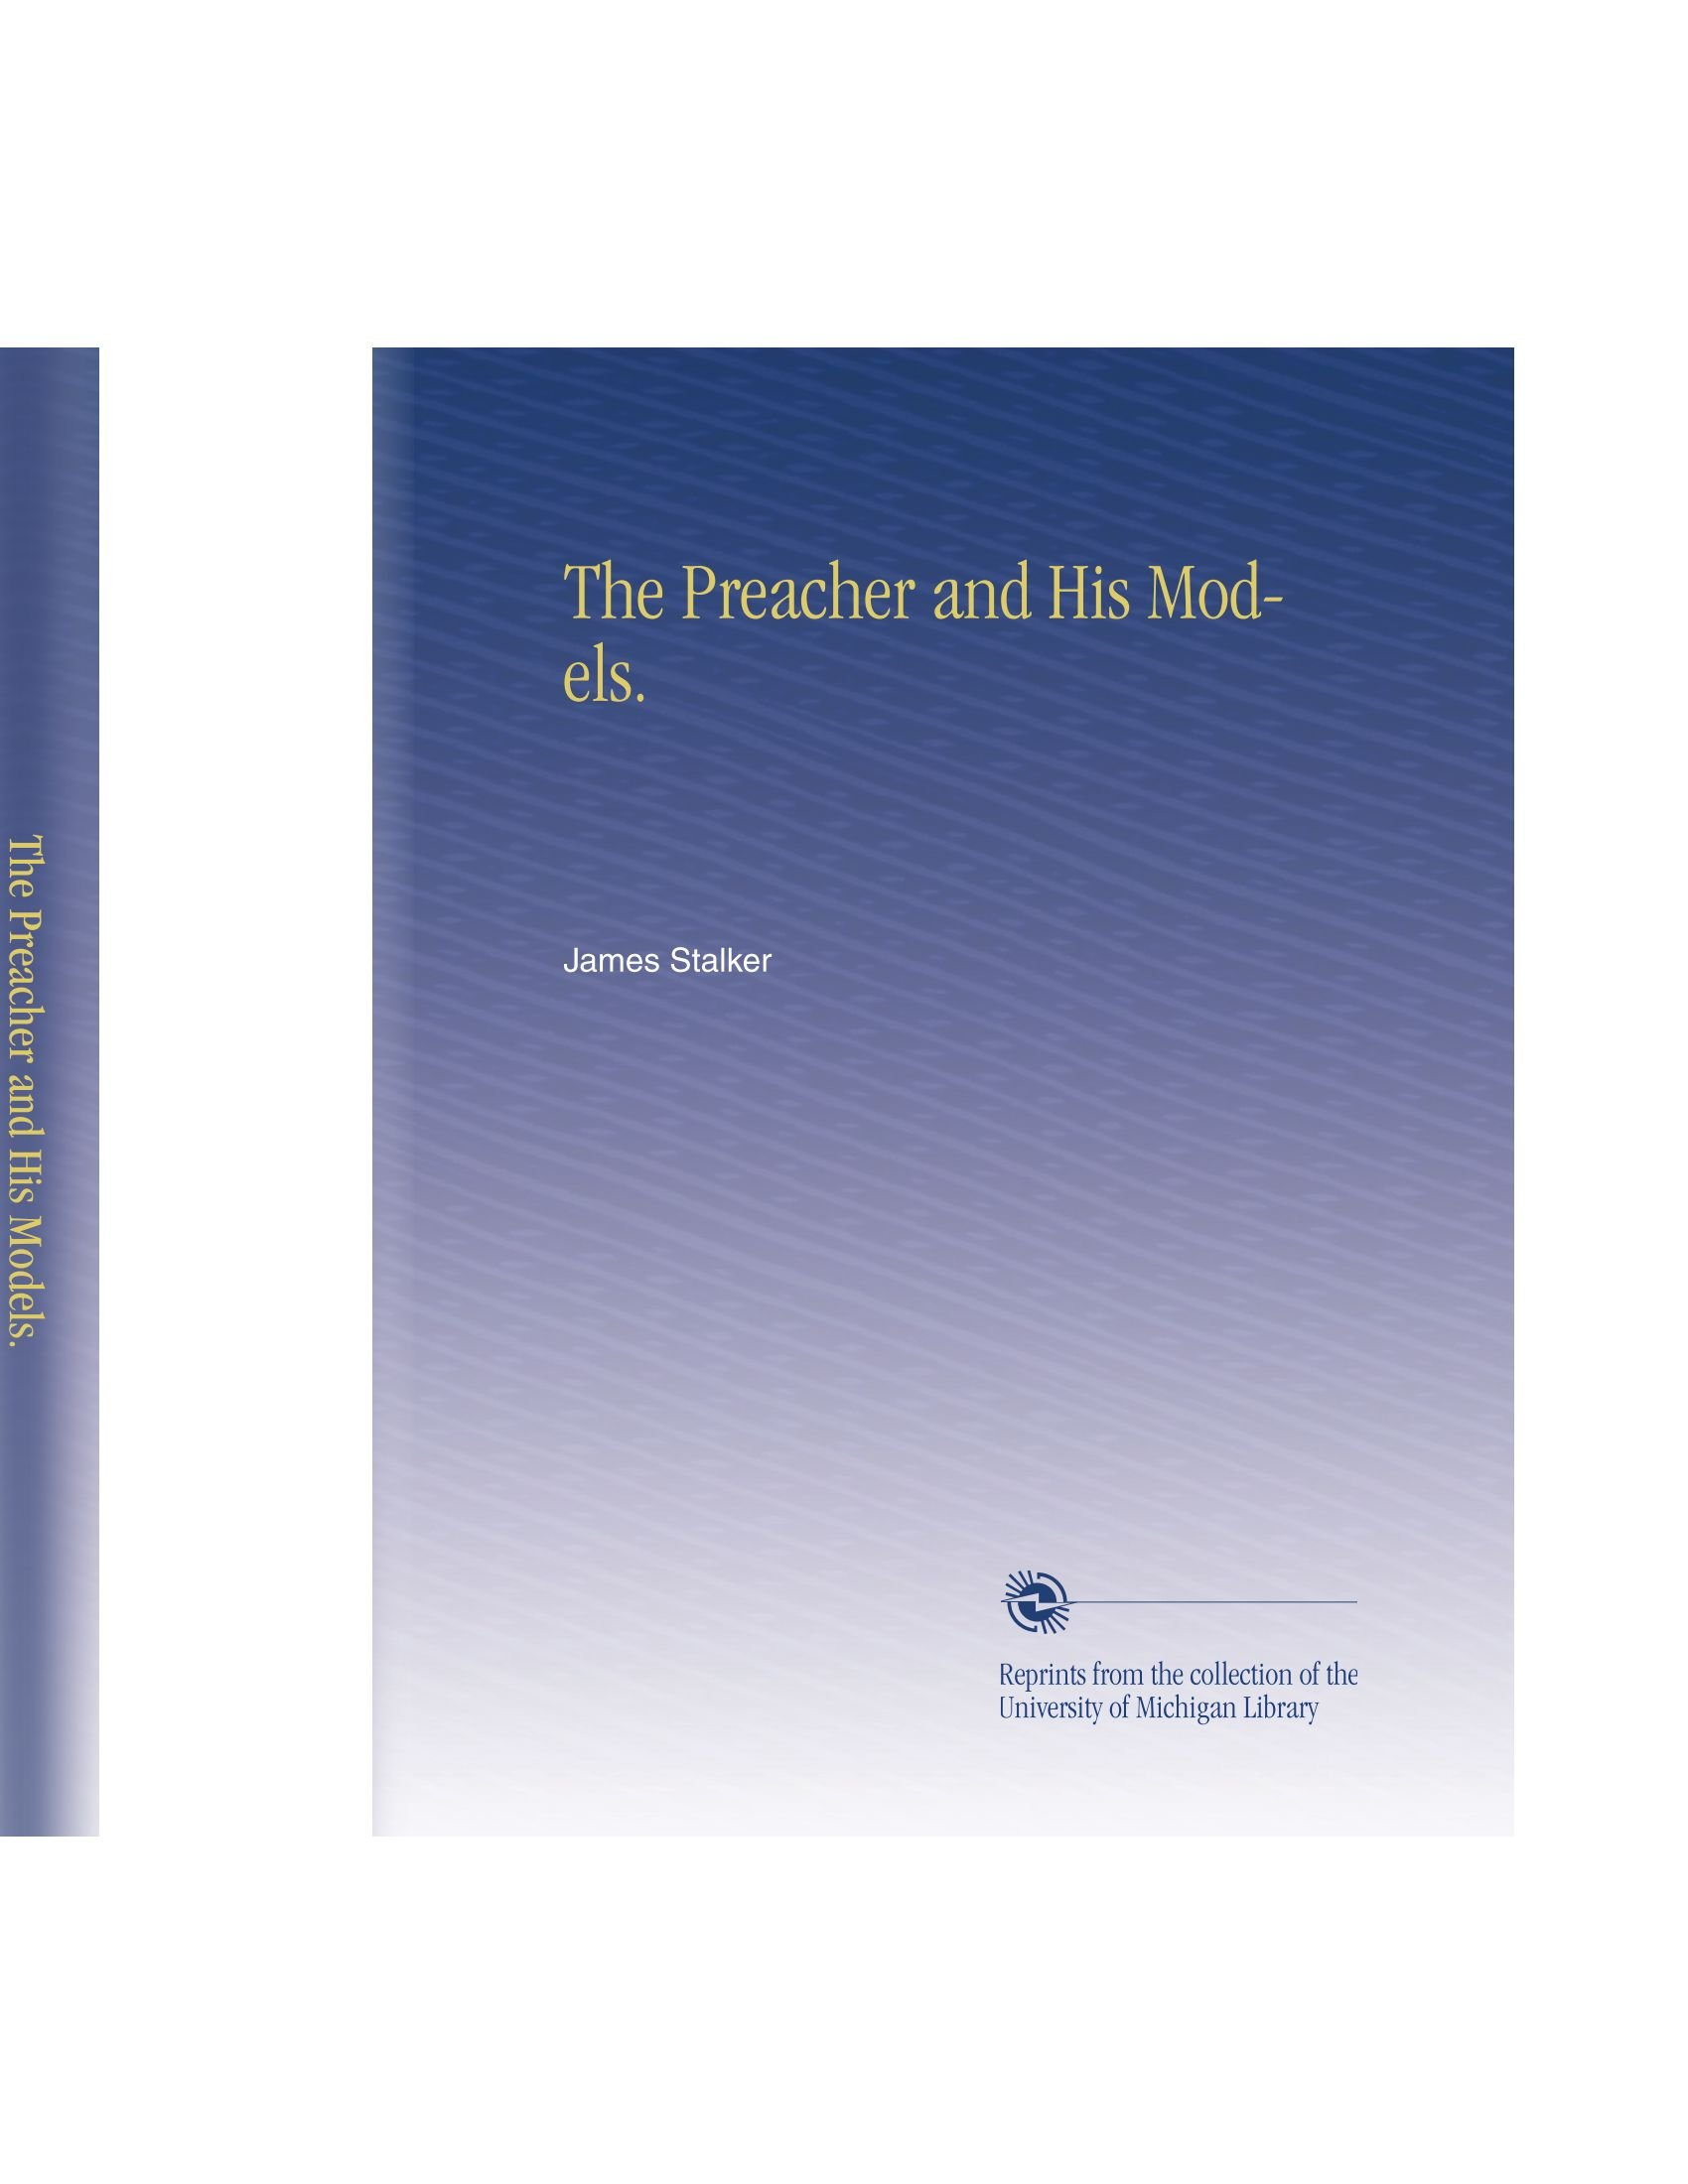 The Preacher and His Models. PDF